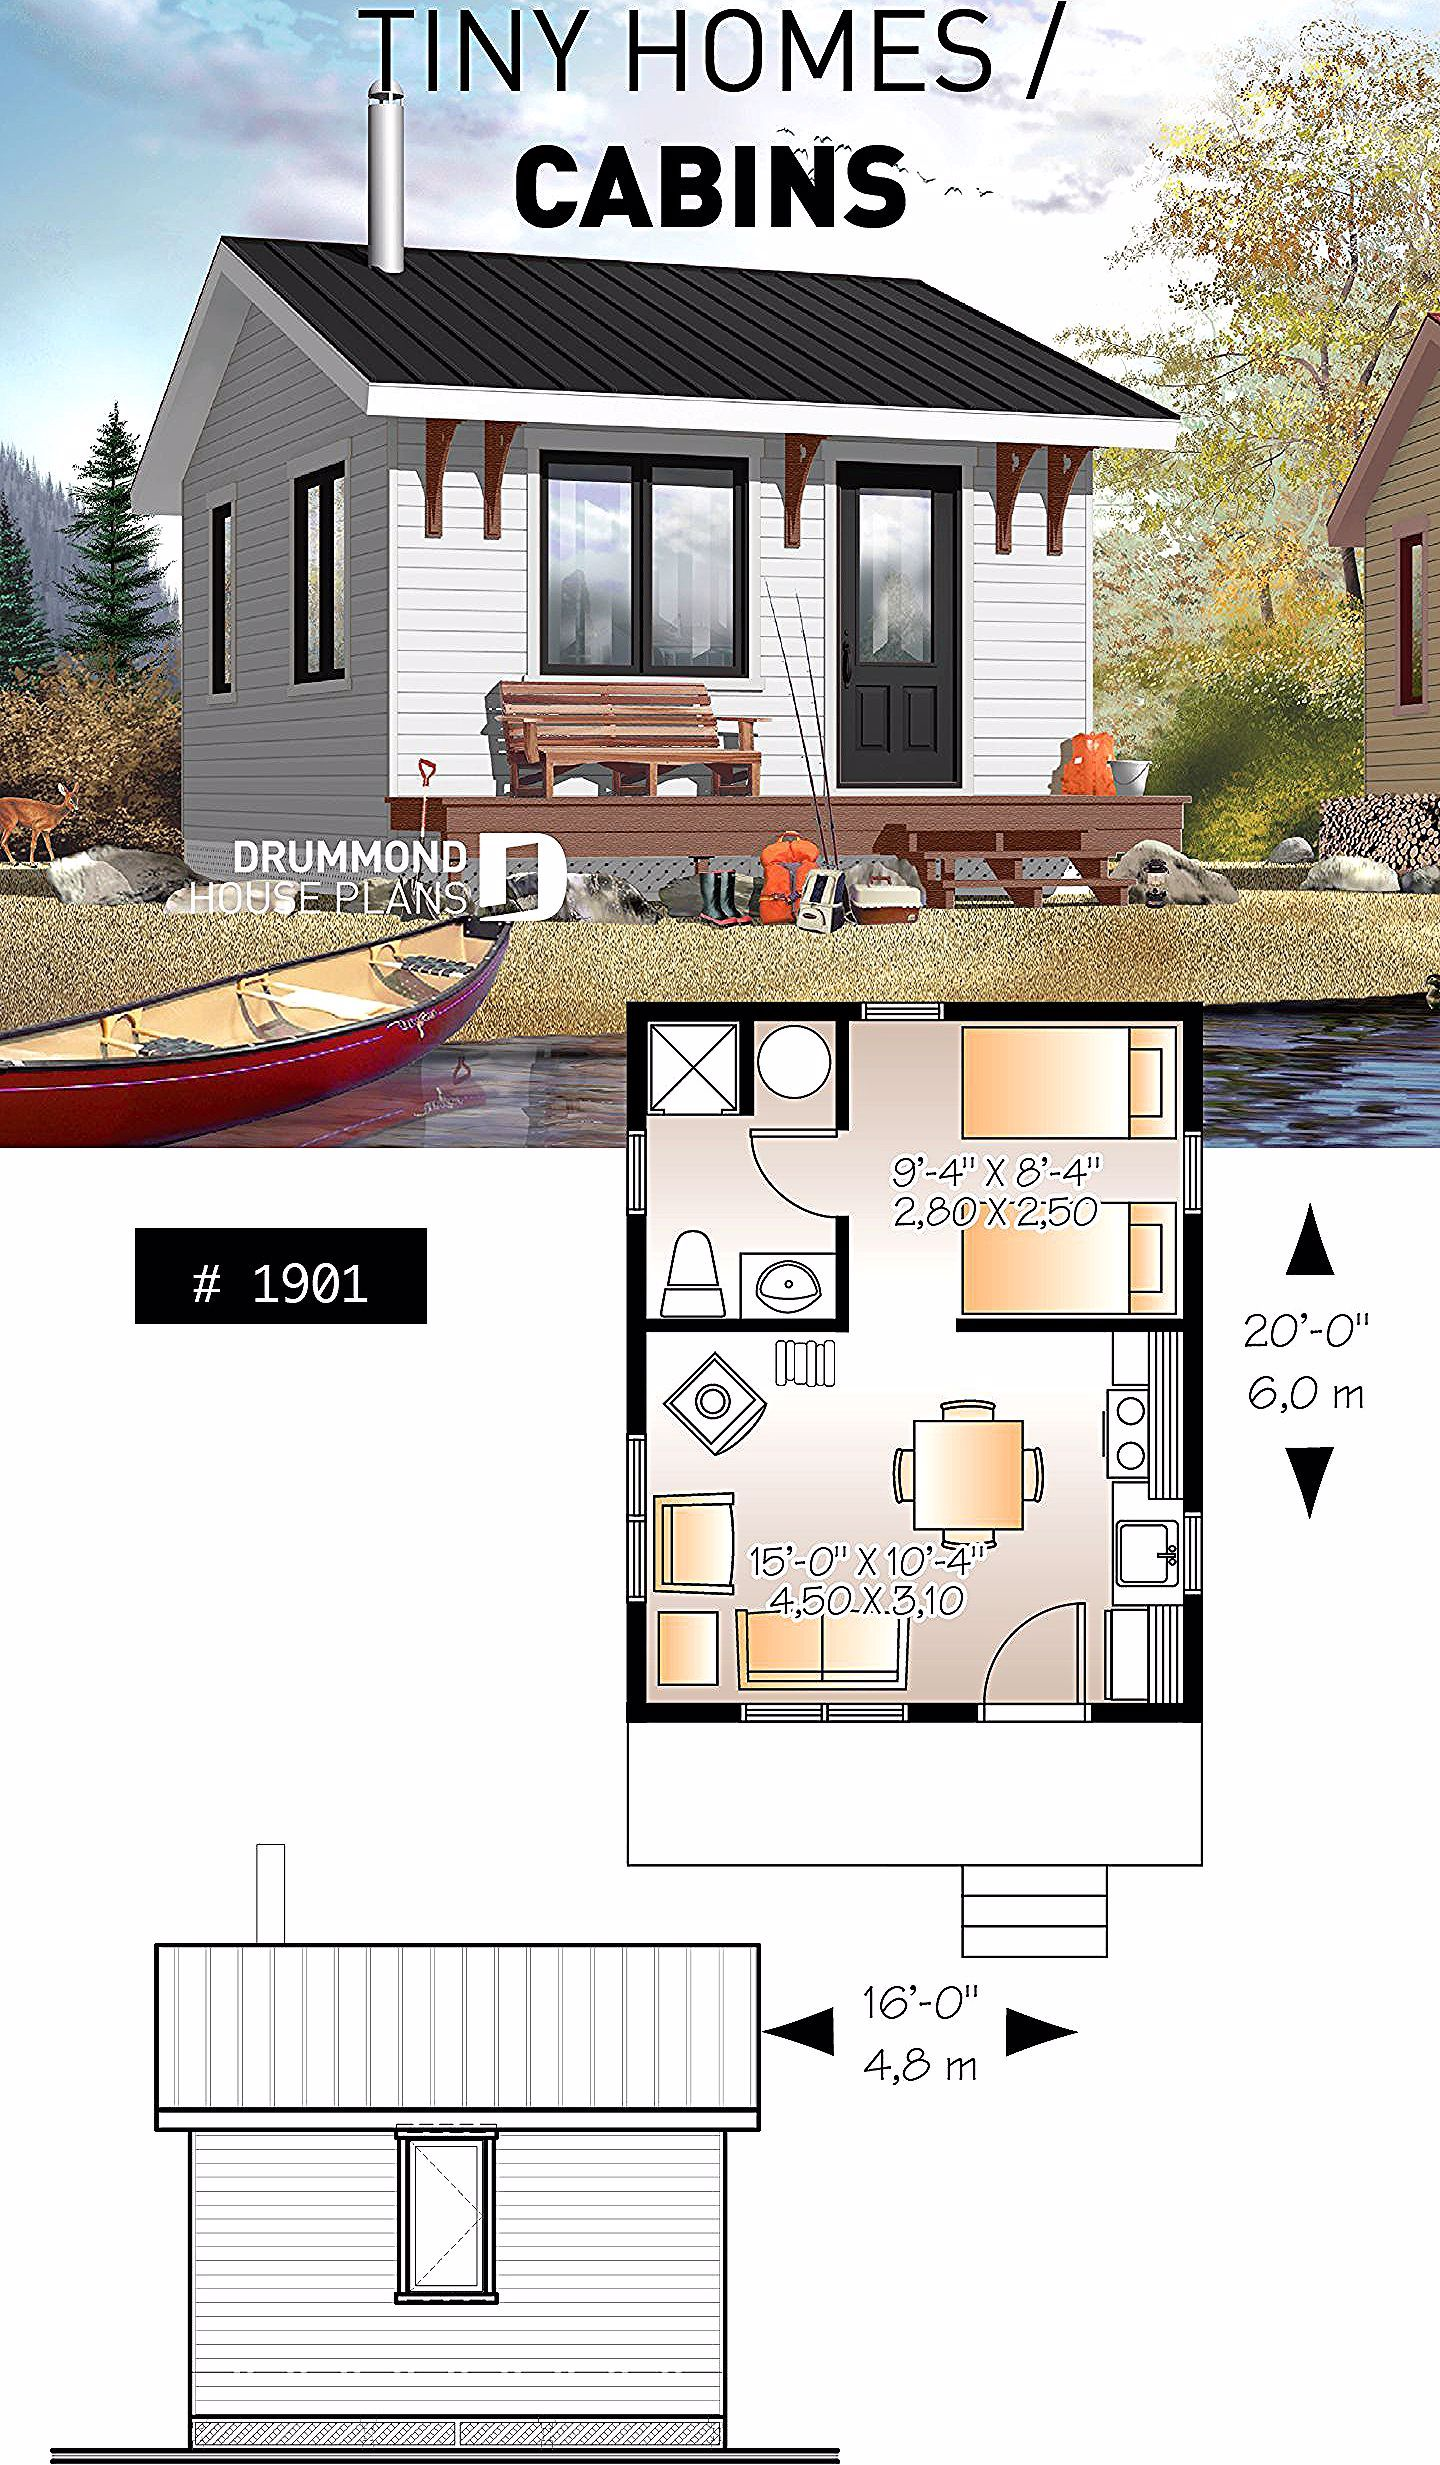 Small 1 Bedroom Cabin Plan 1 Shower Room Options For 3 Or 4 Season Included Wood Stove With Images Tiny House Cabin Tiny House Plans Tiny House Floor Plans